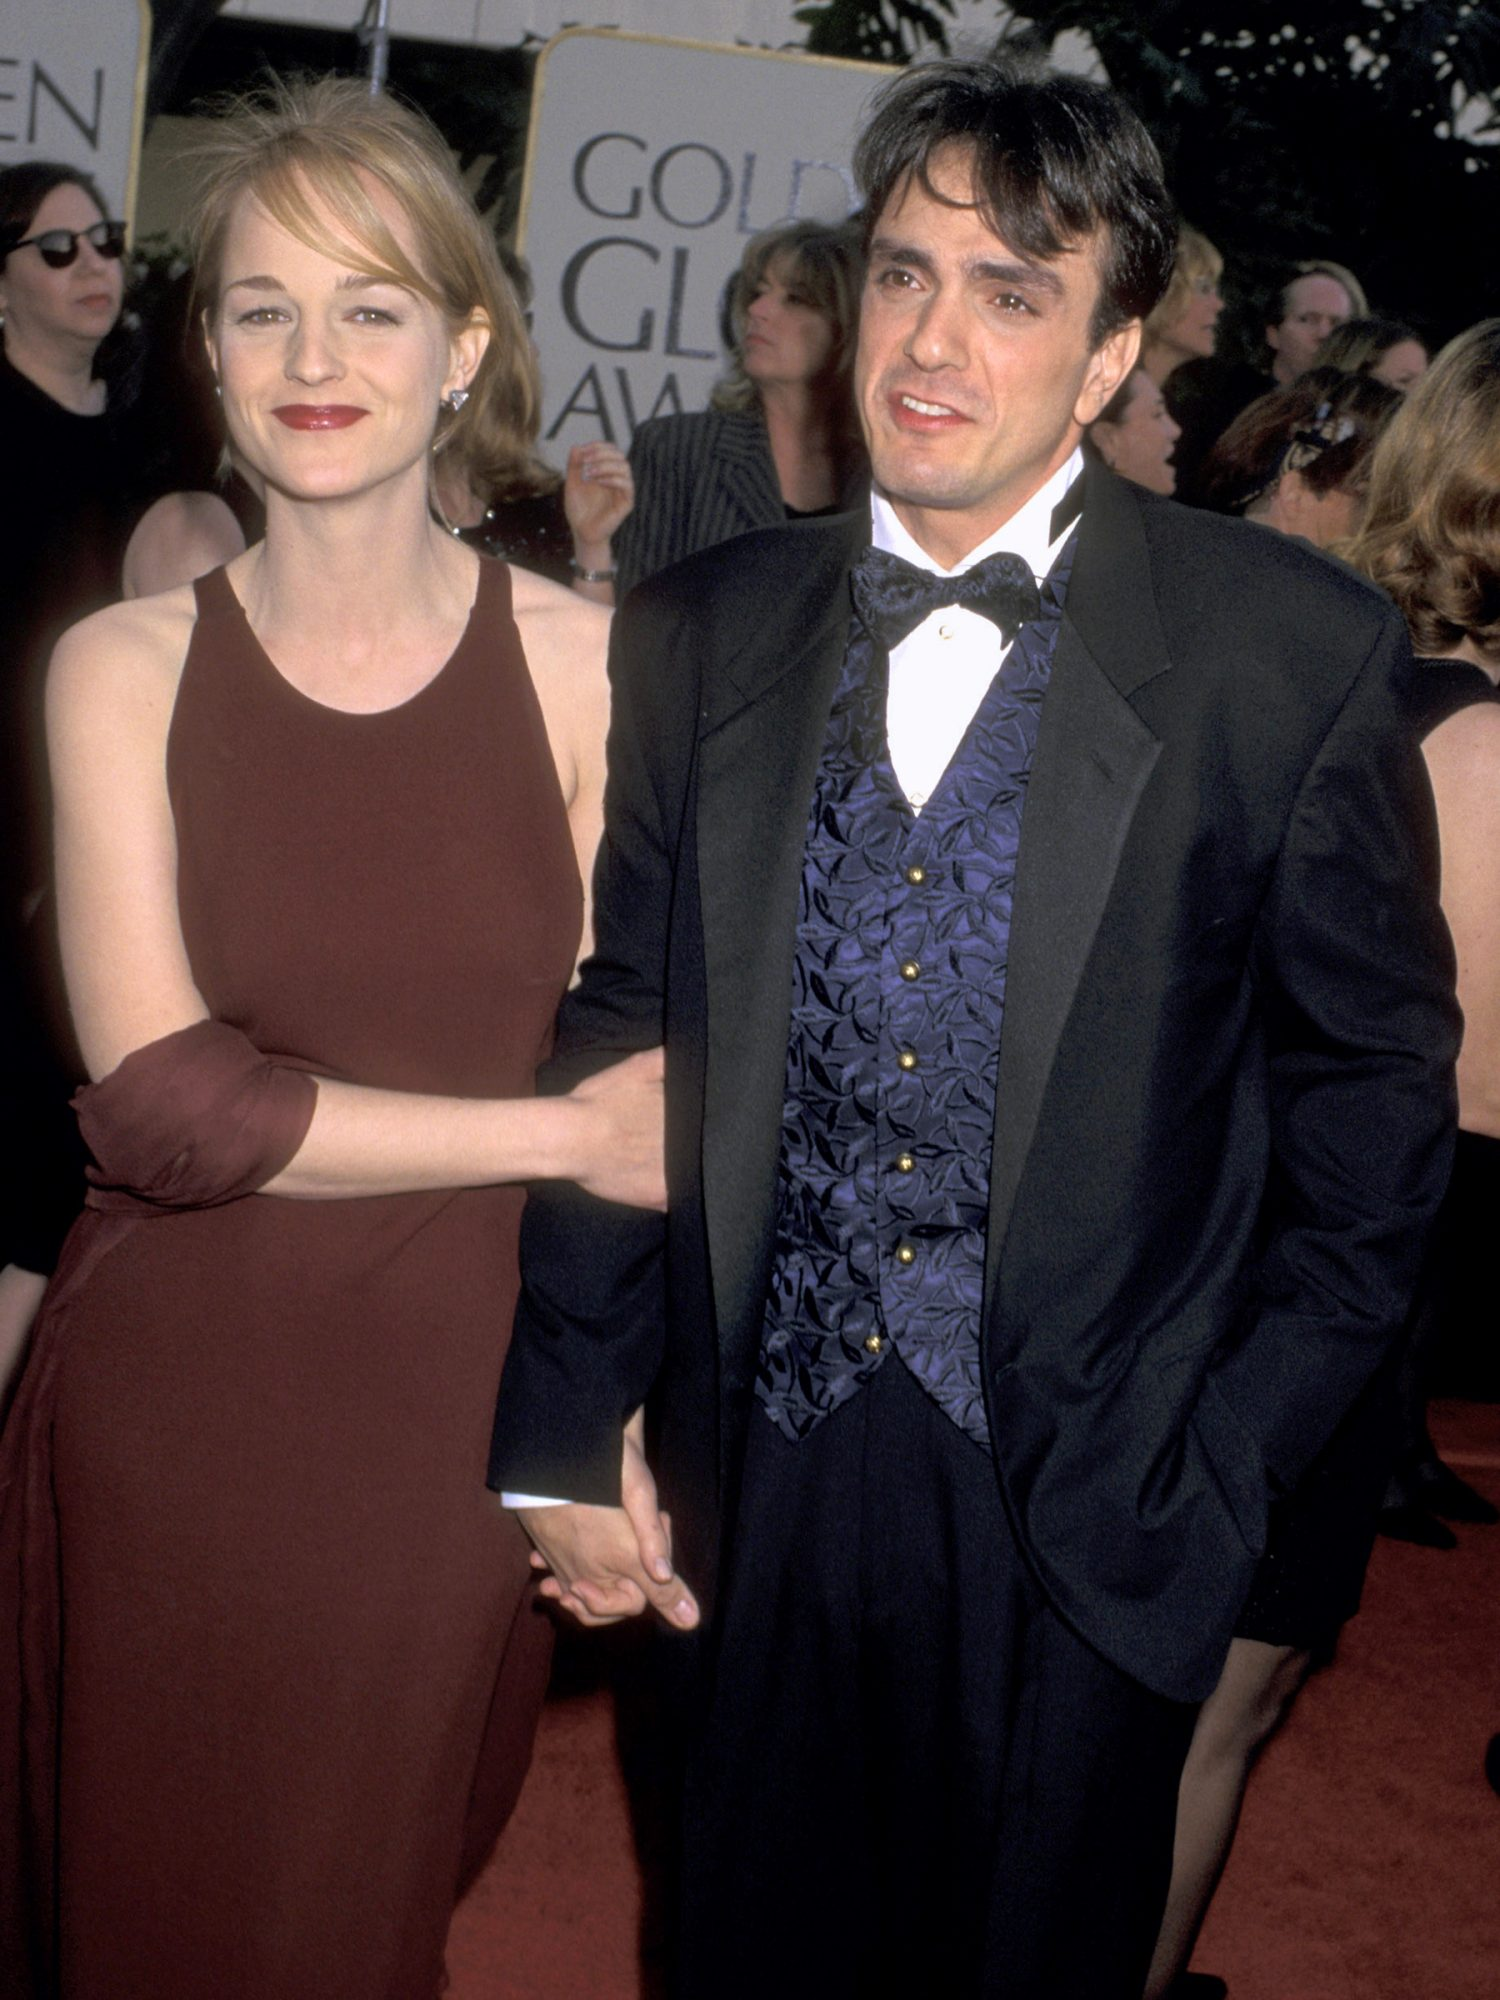 Best Actress in a Musical or Comedy Series Winner Helen Hunt (Mad About You) and Hank Azaria